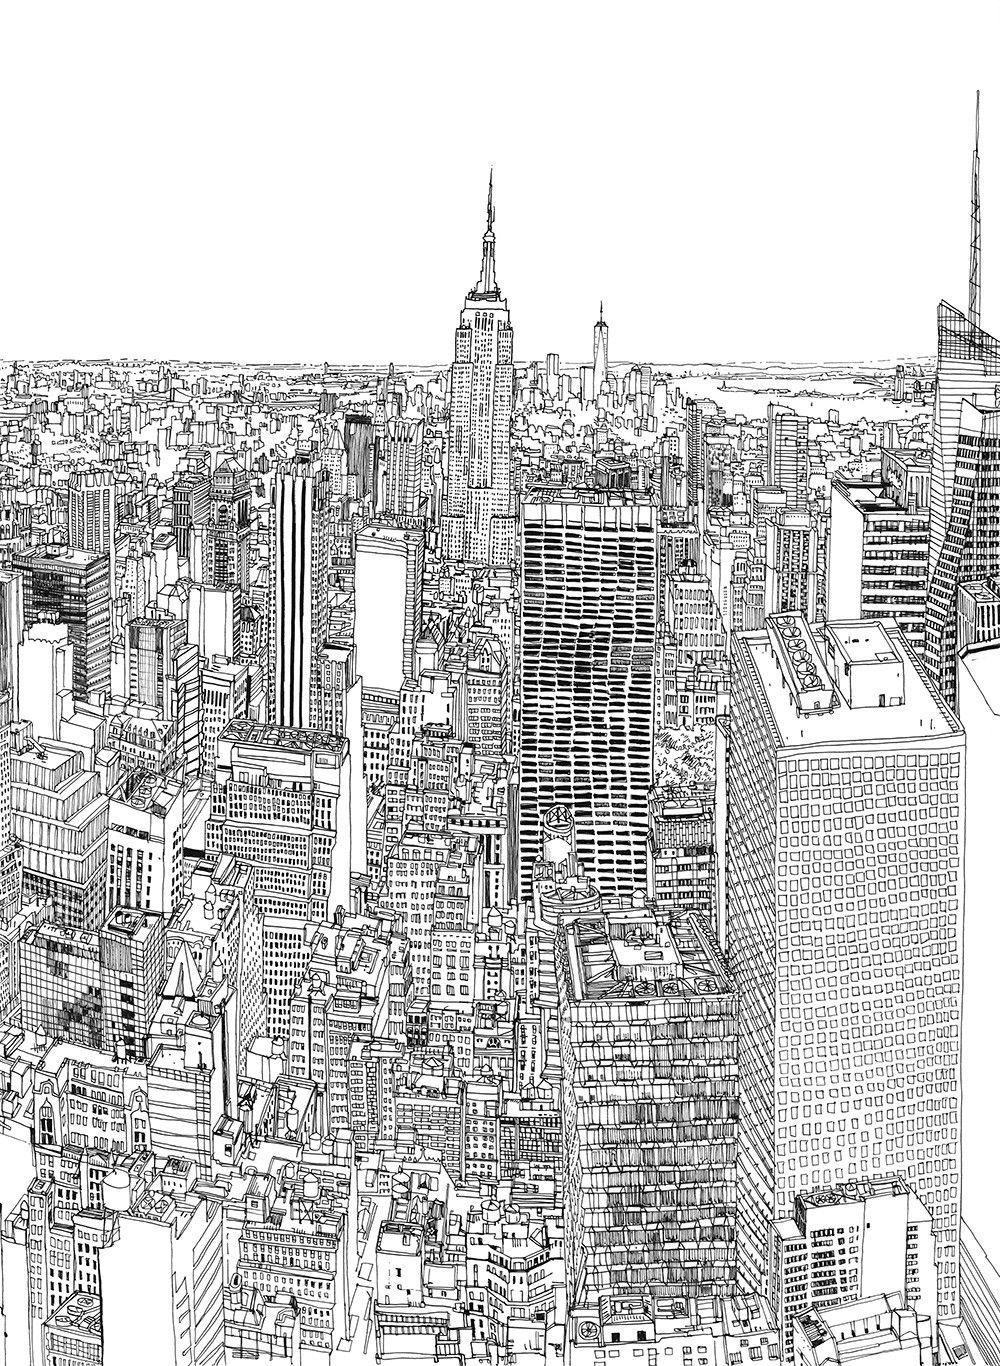 Patrick-Vale-Drawing-New-York-Skyline-123def